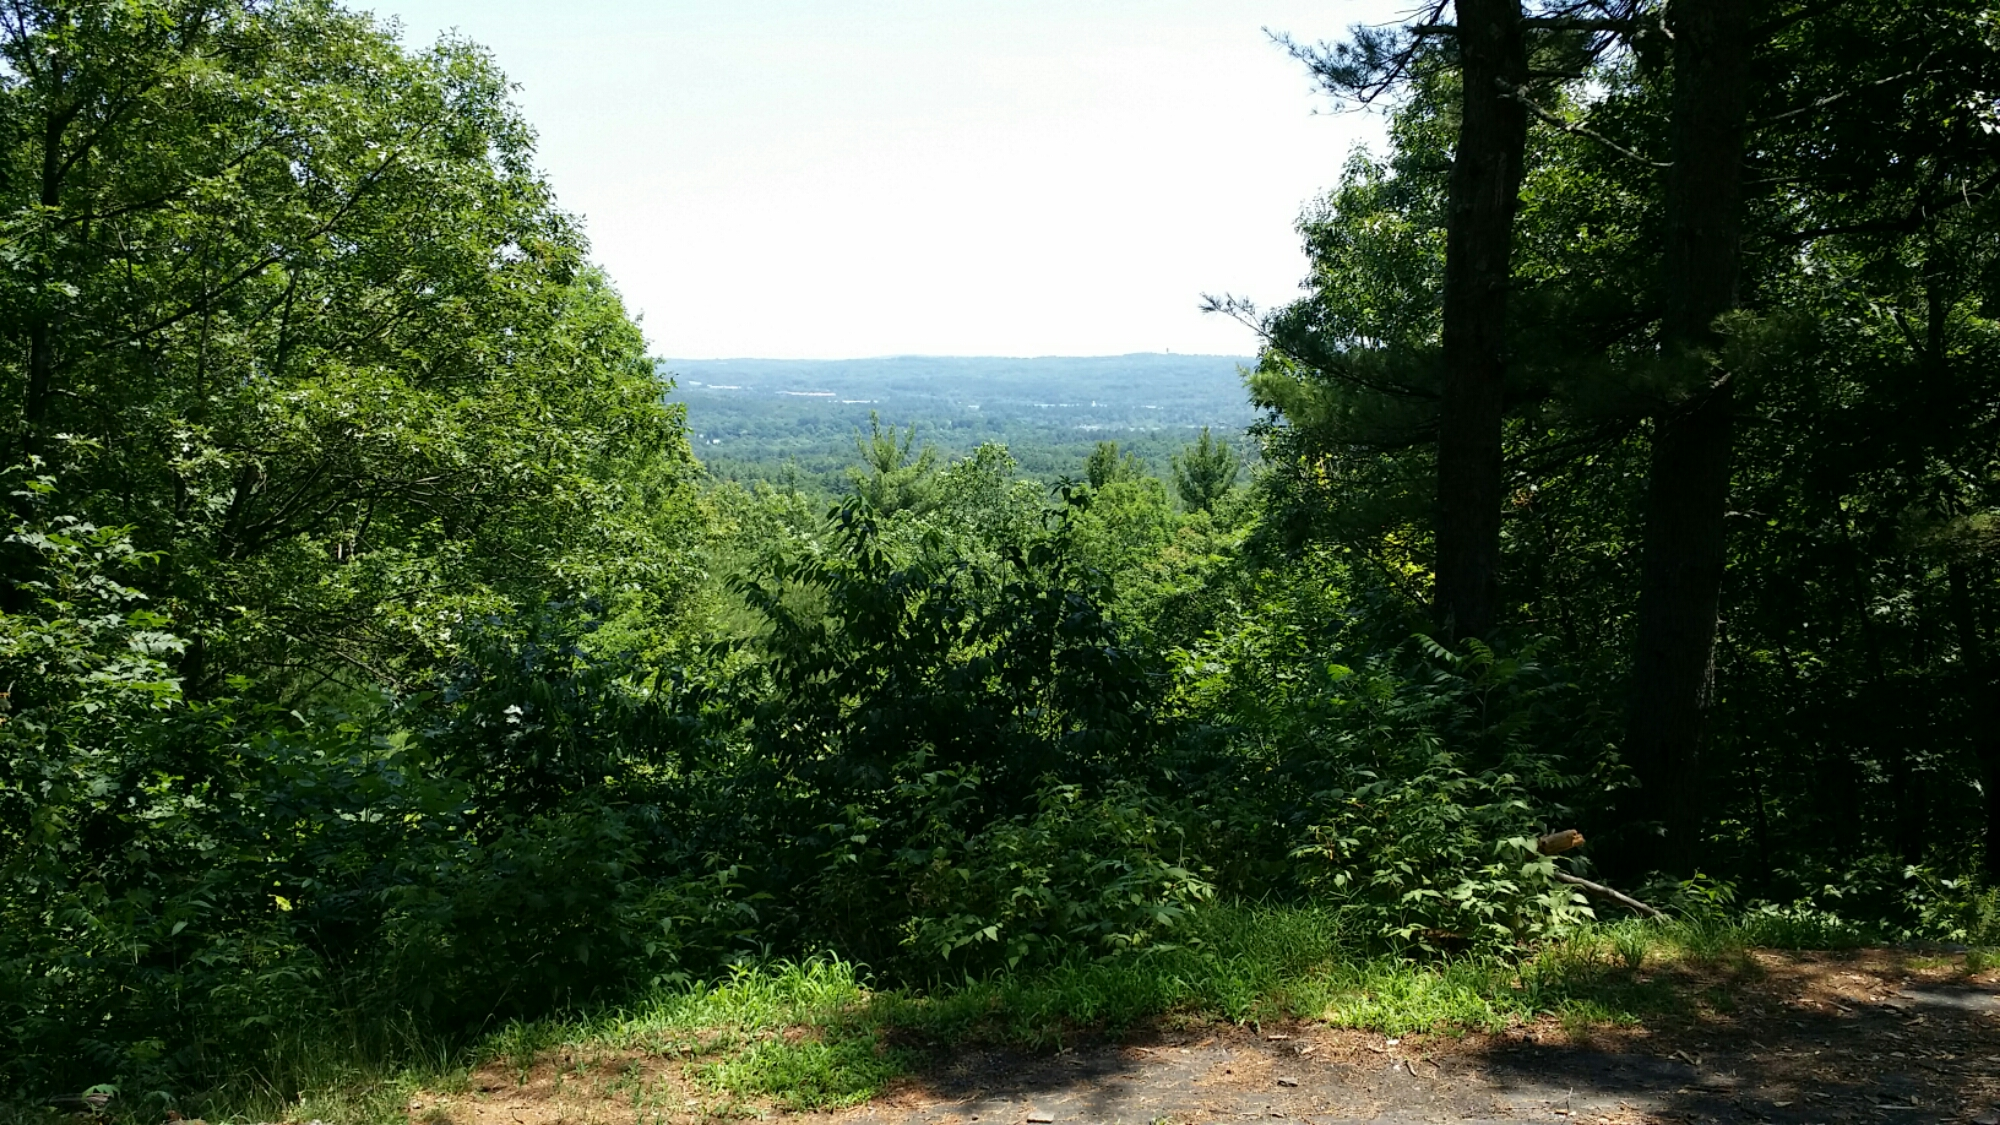 Mt. Pisgah – Berlin, MA